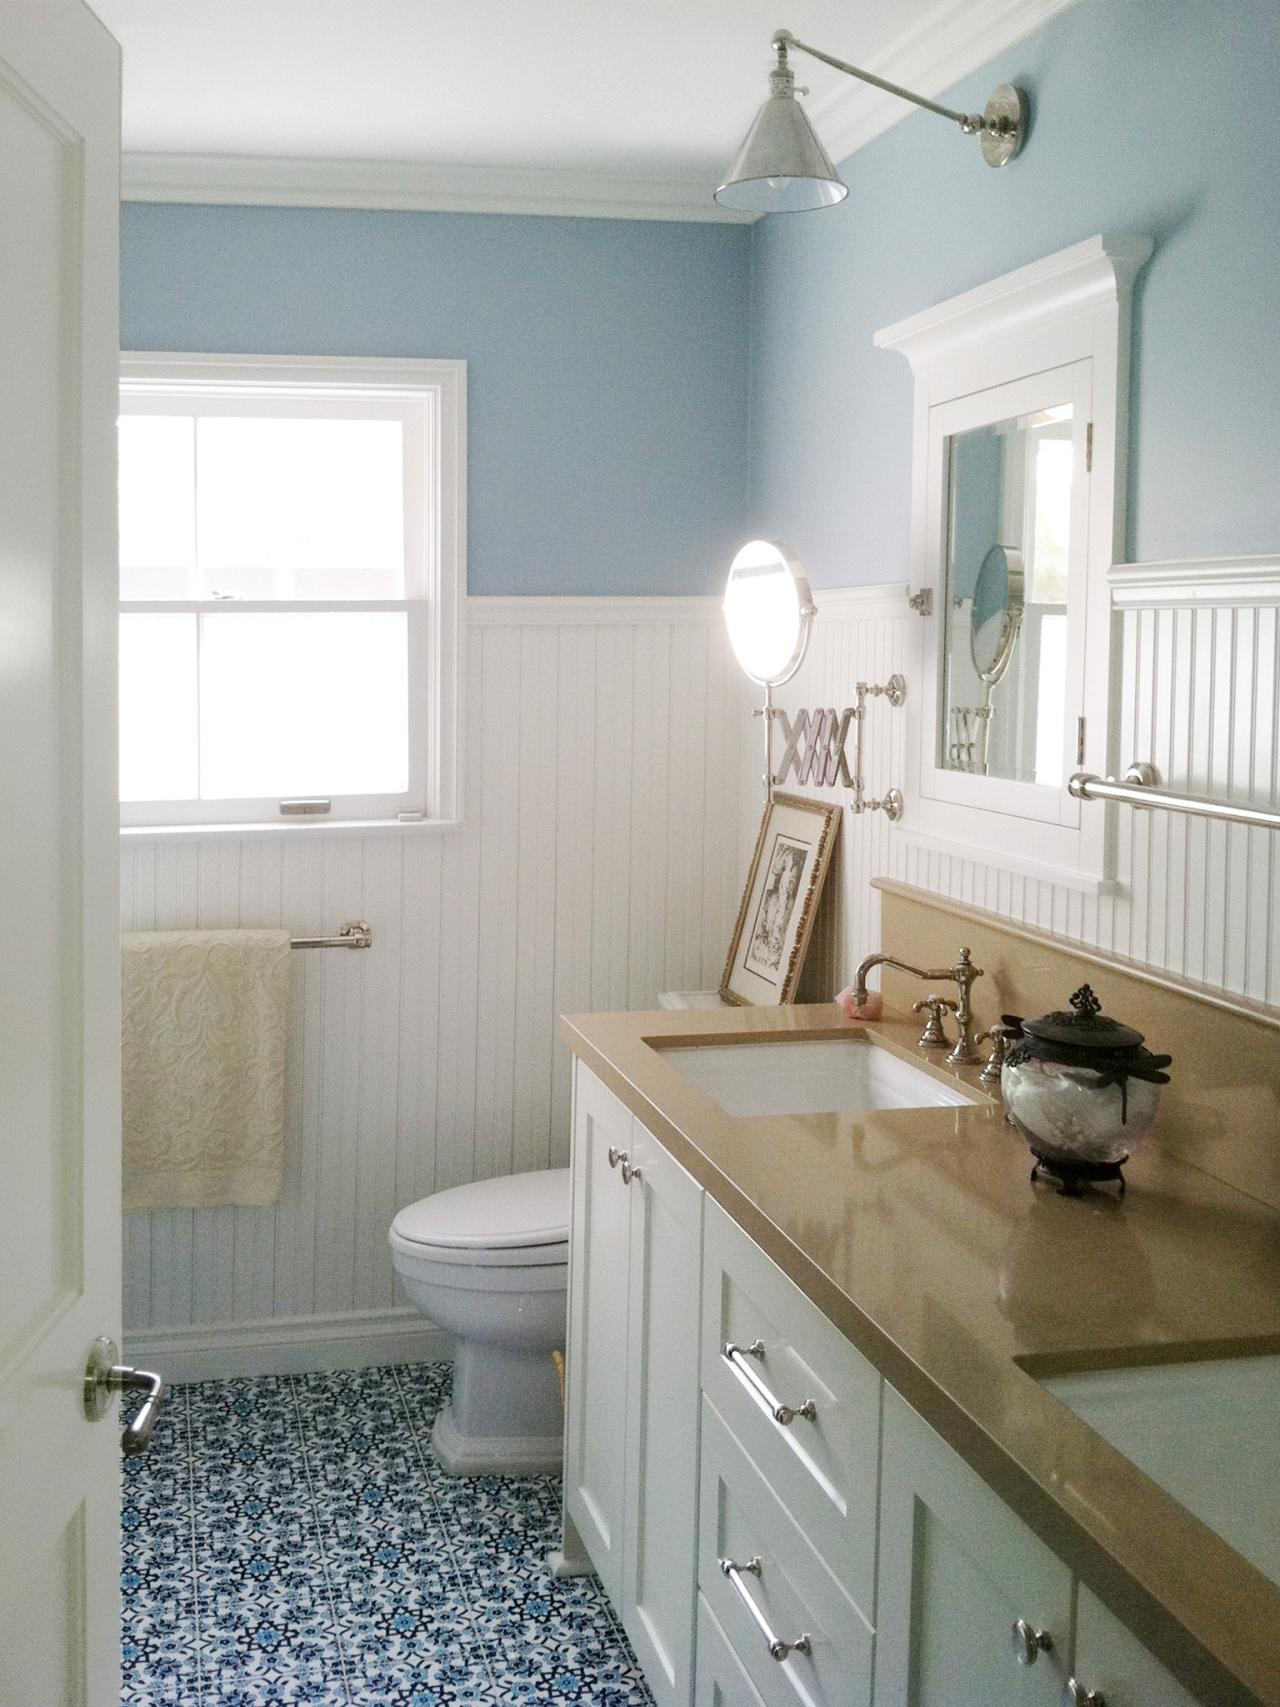 Design Trend Decorating With Blue Color Palette And Schemes For Rooms In Your Home Hgtv